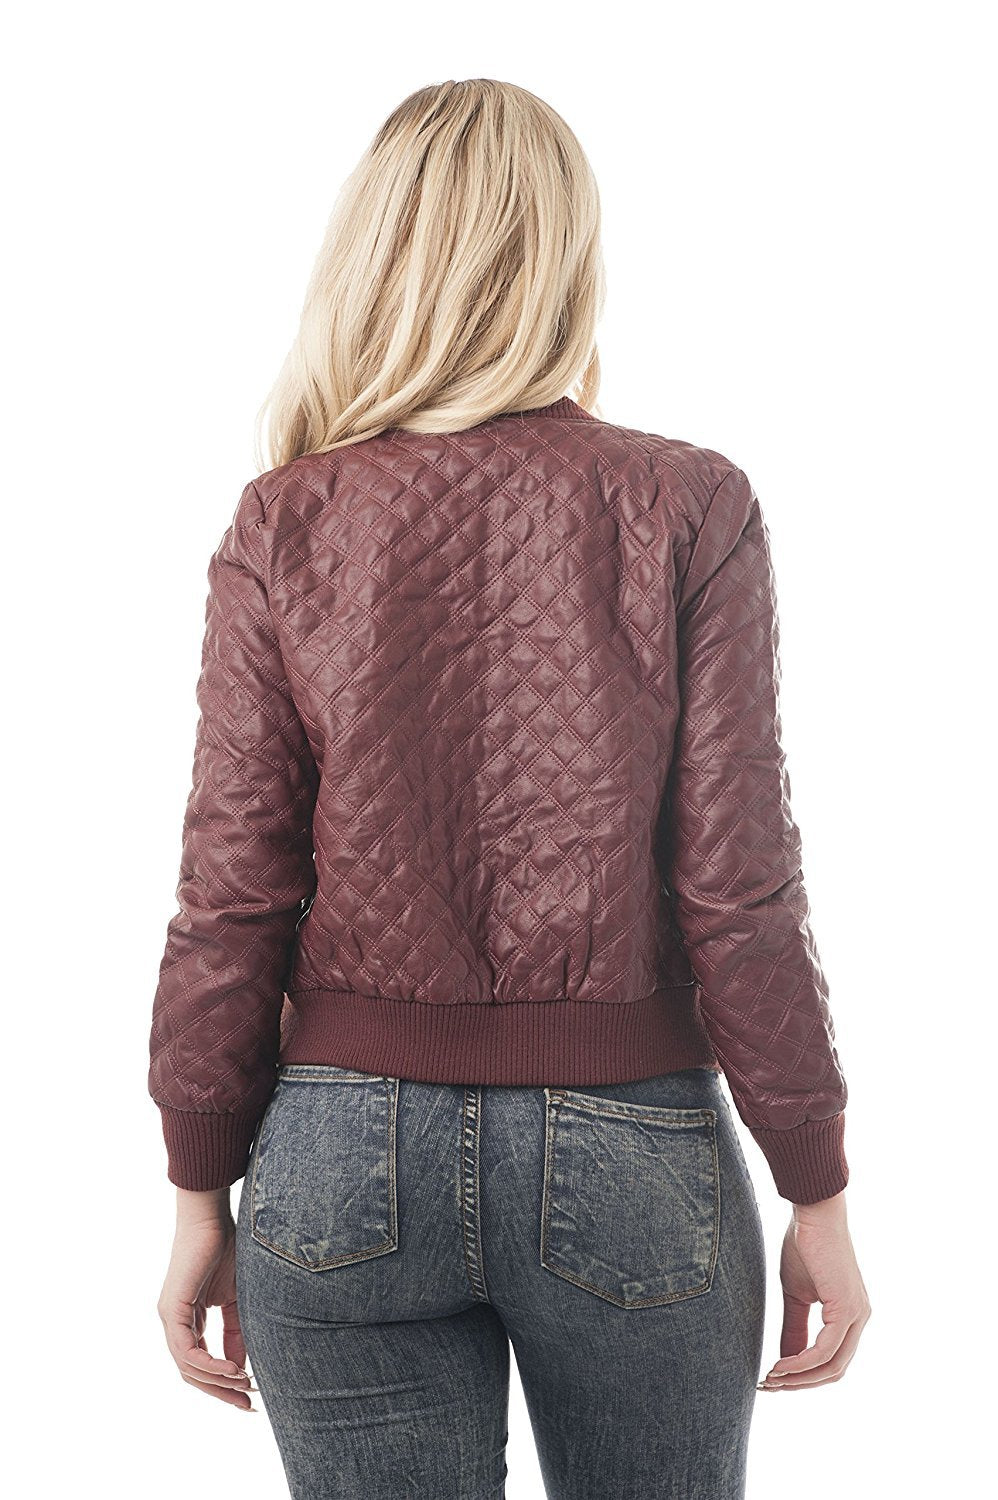 Faux Quilted Leather Jacket with Side Pockets